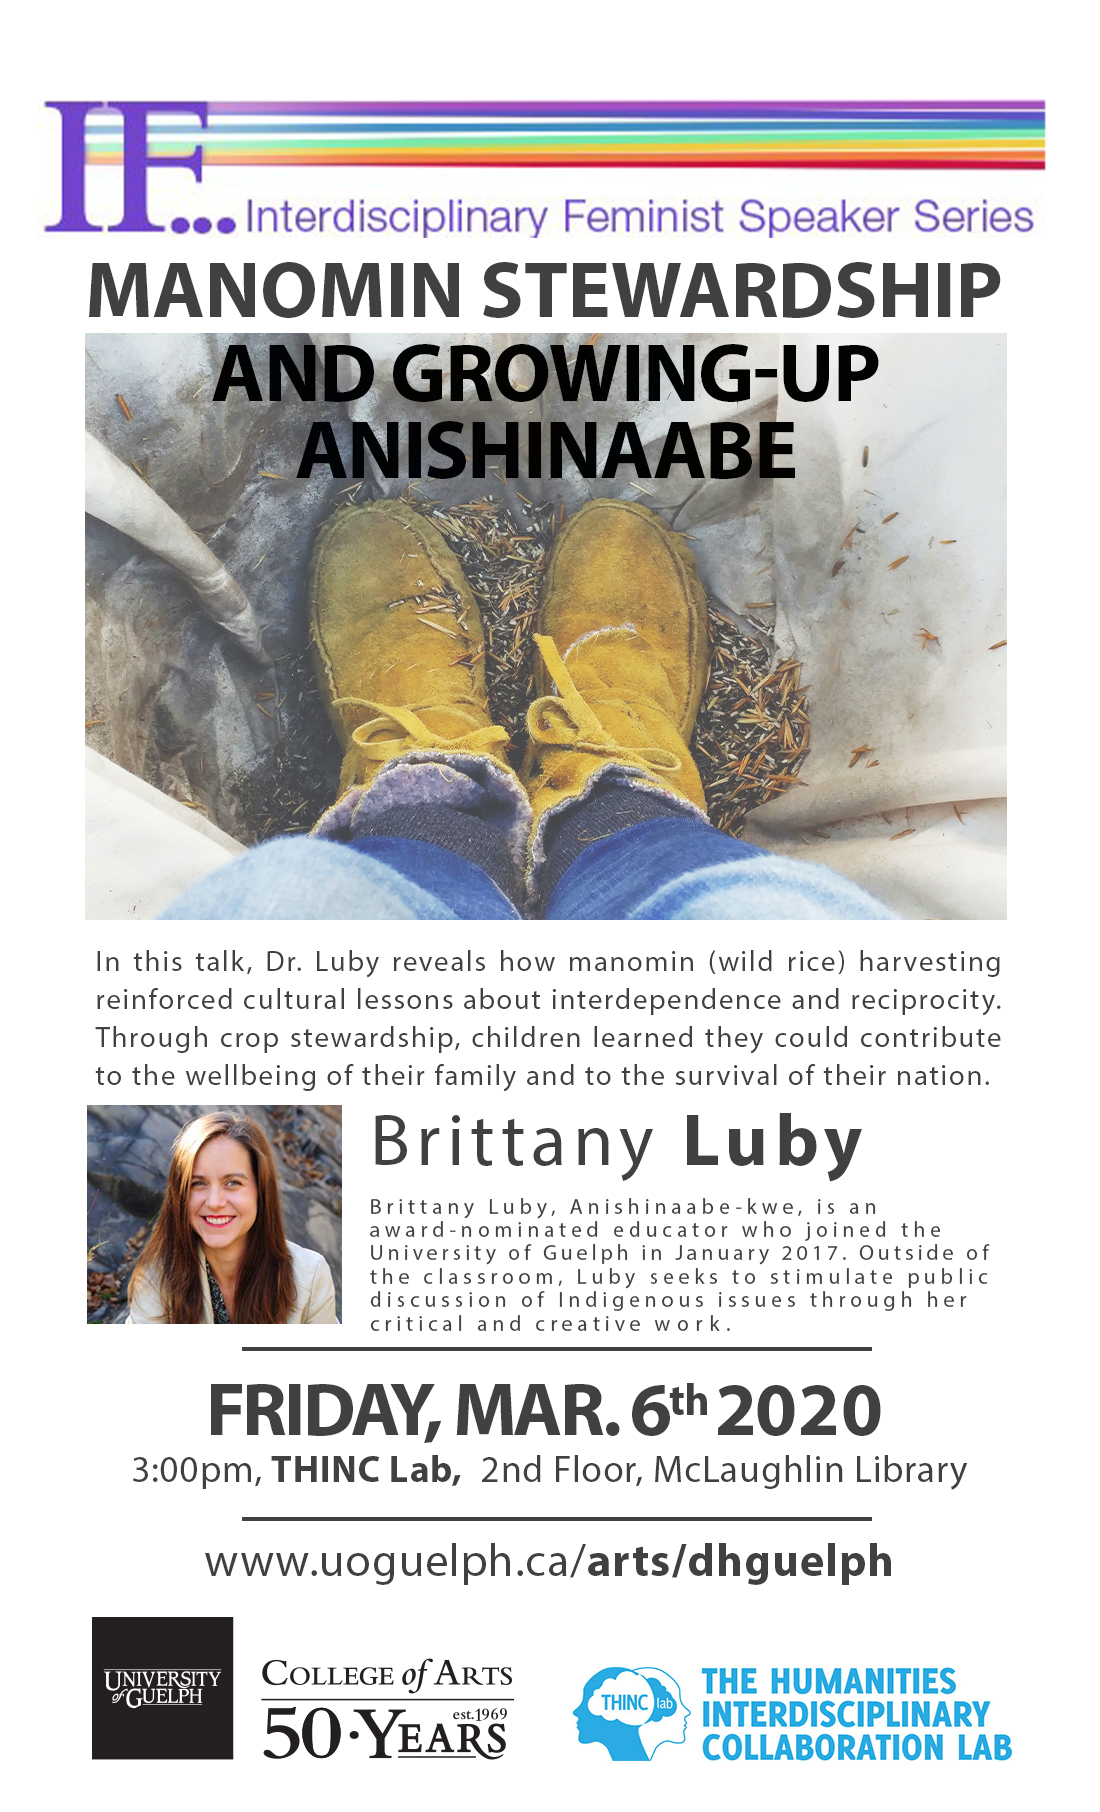 Poster of Brittany Luby's Lecture on March 6, 2020.